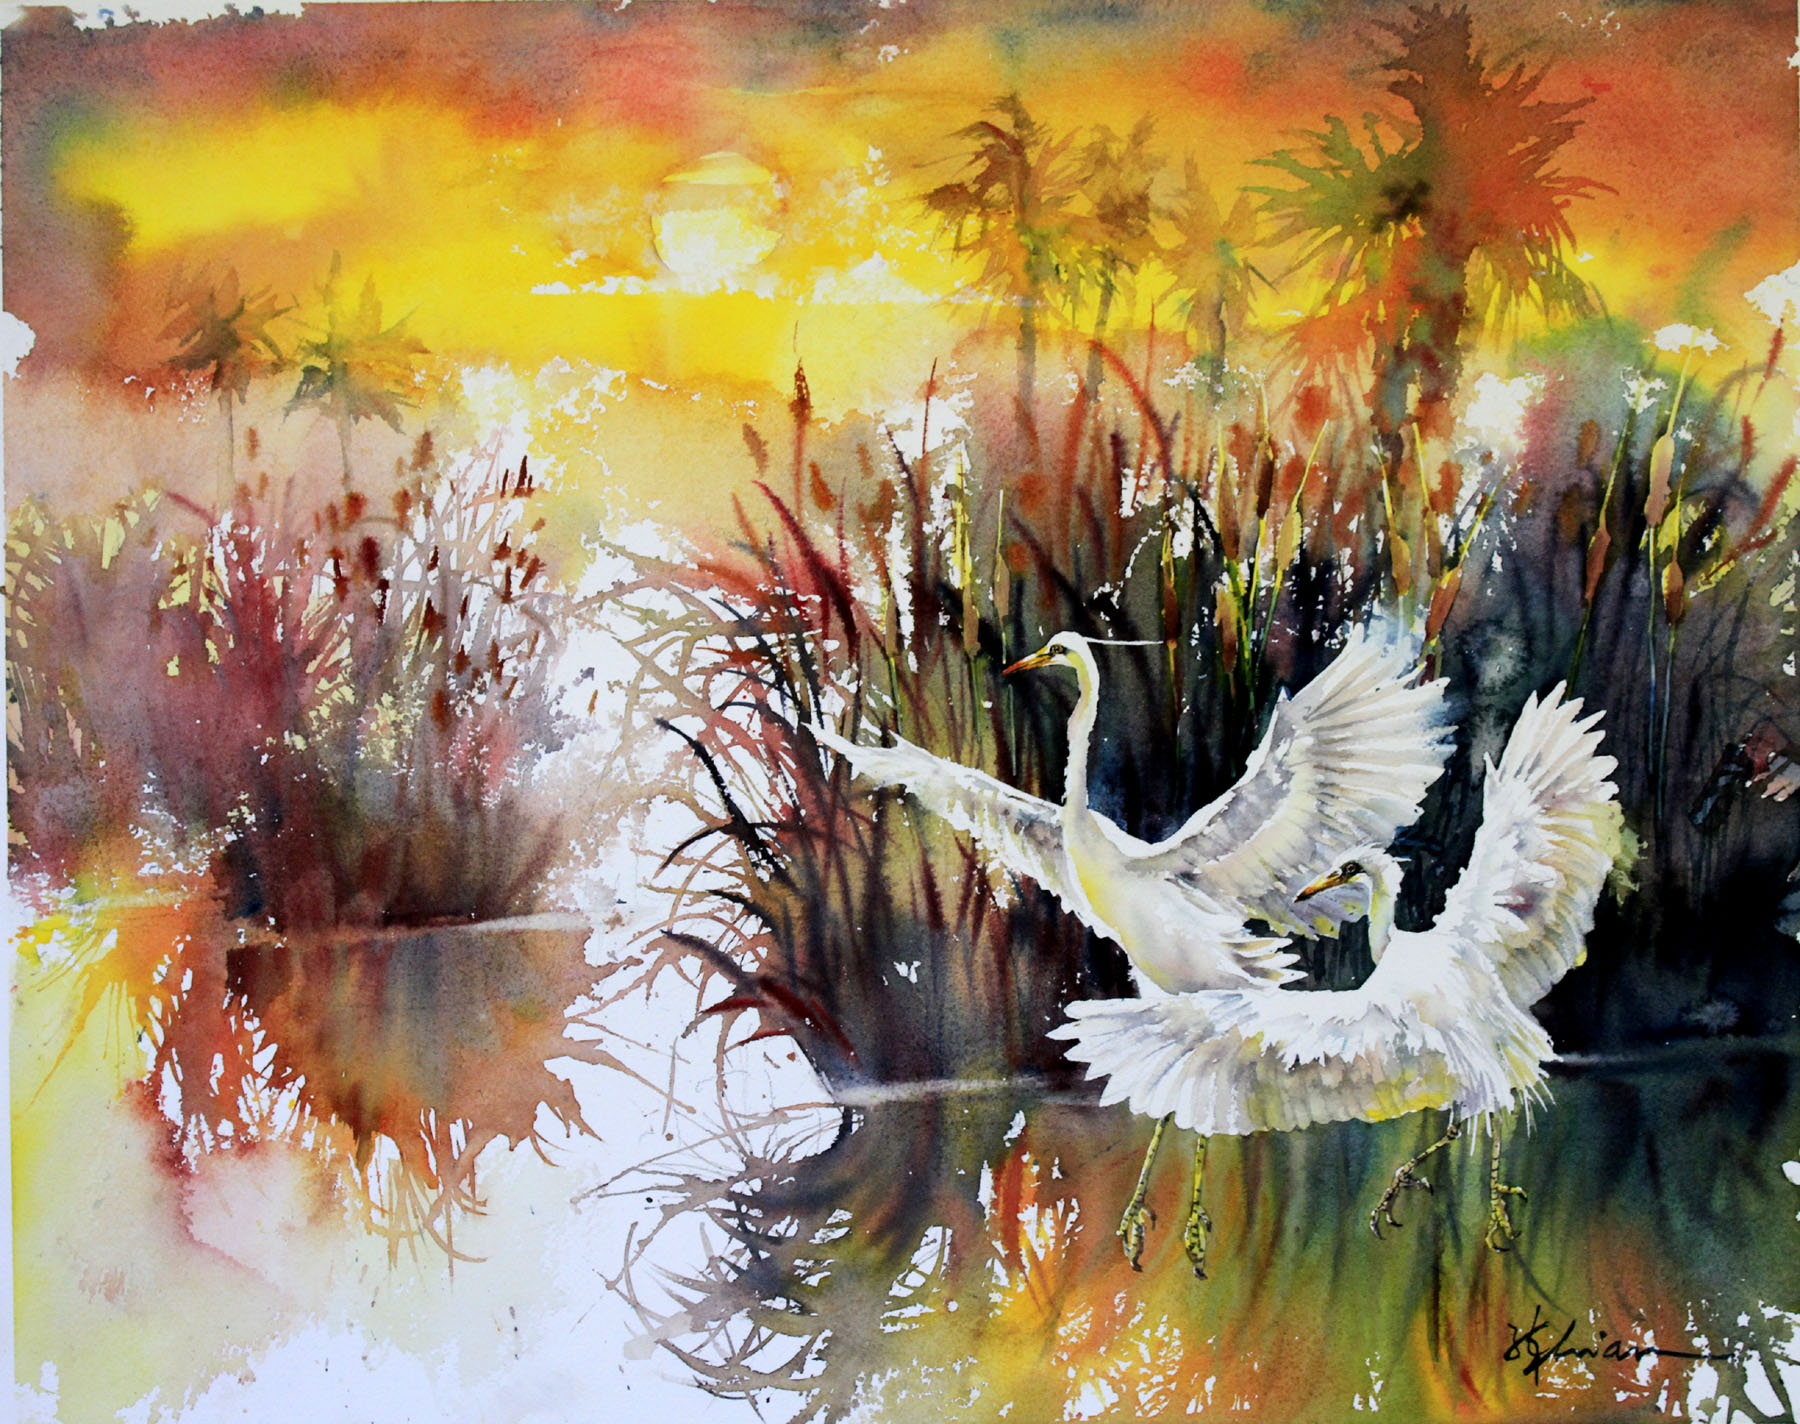 Lian quan zhen on pinterest chinese painting for Www painting com